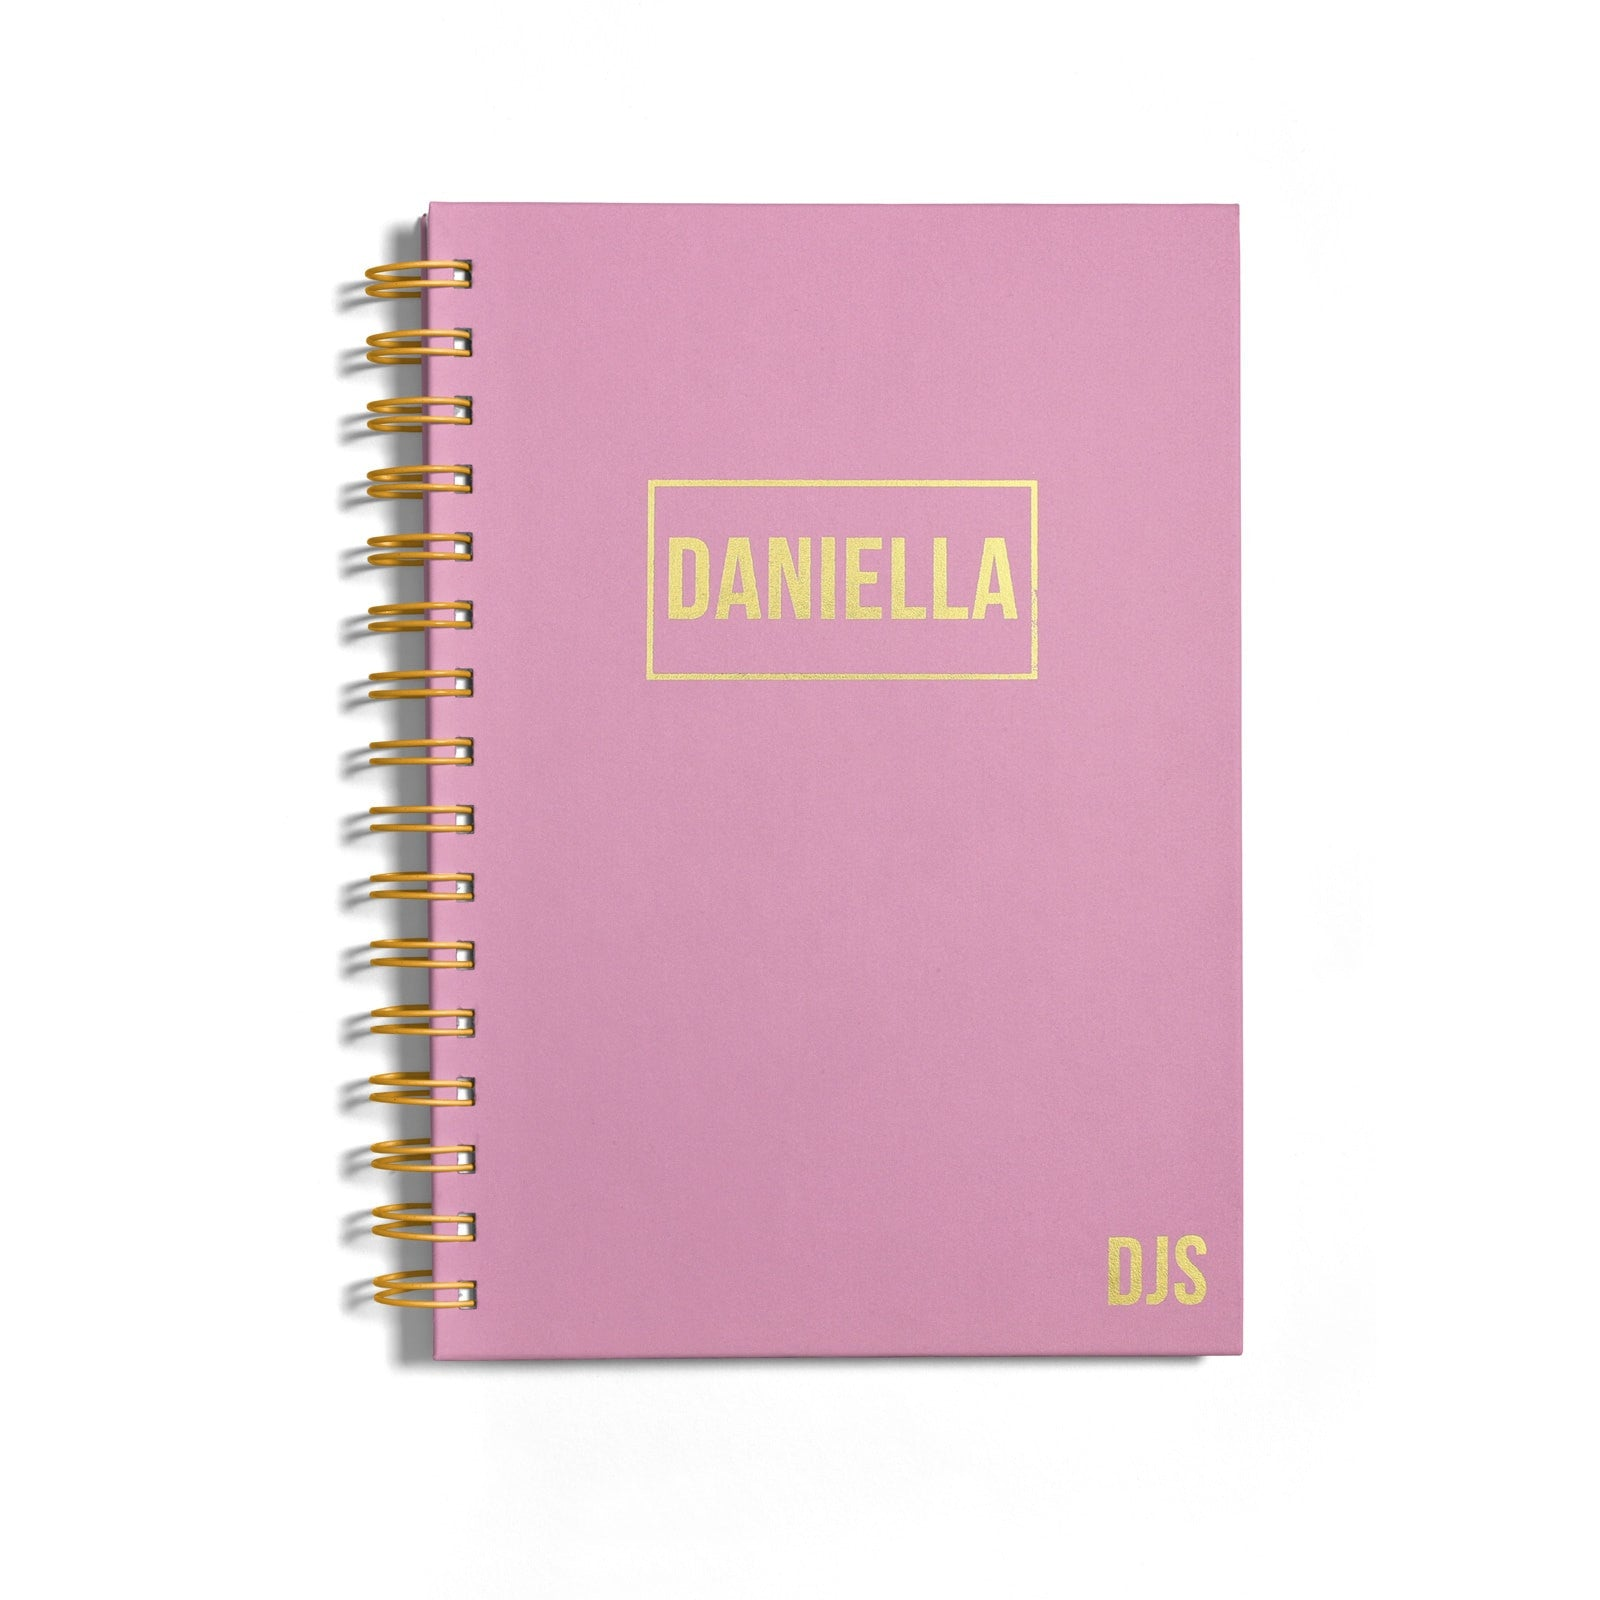 Personalised Gold Foil Notebook with Name & Initials